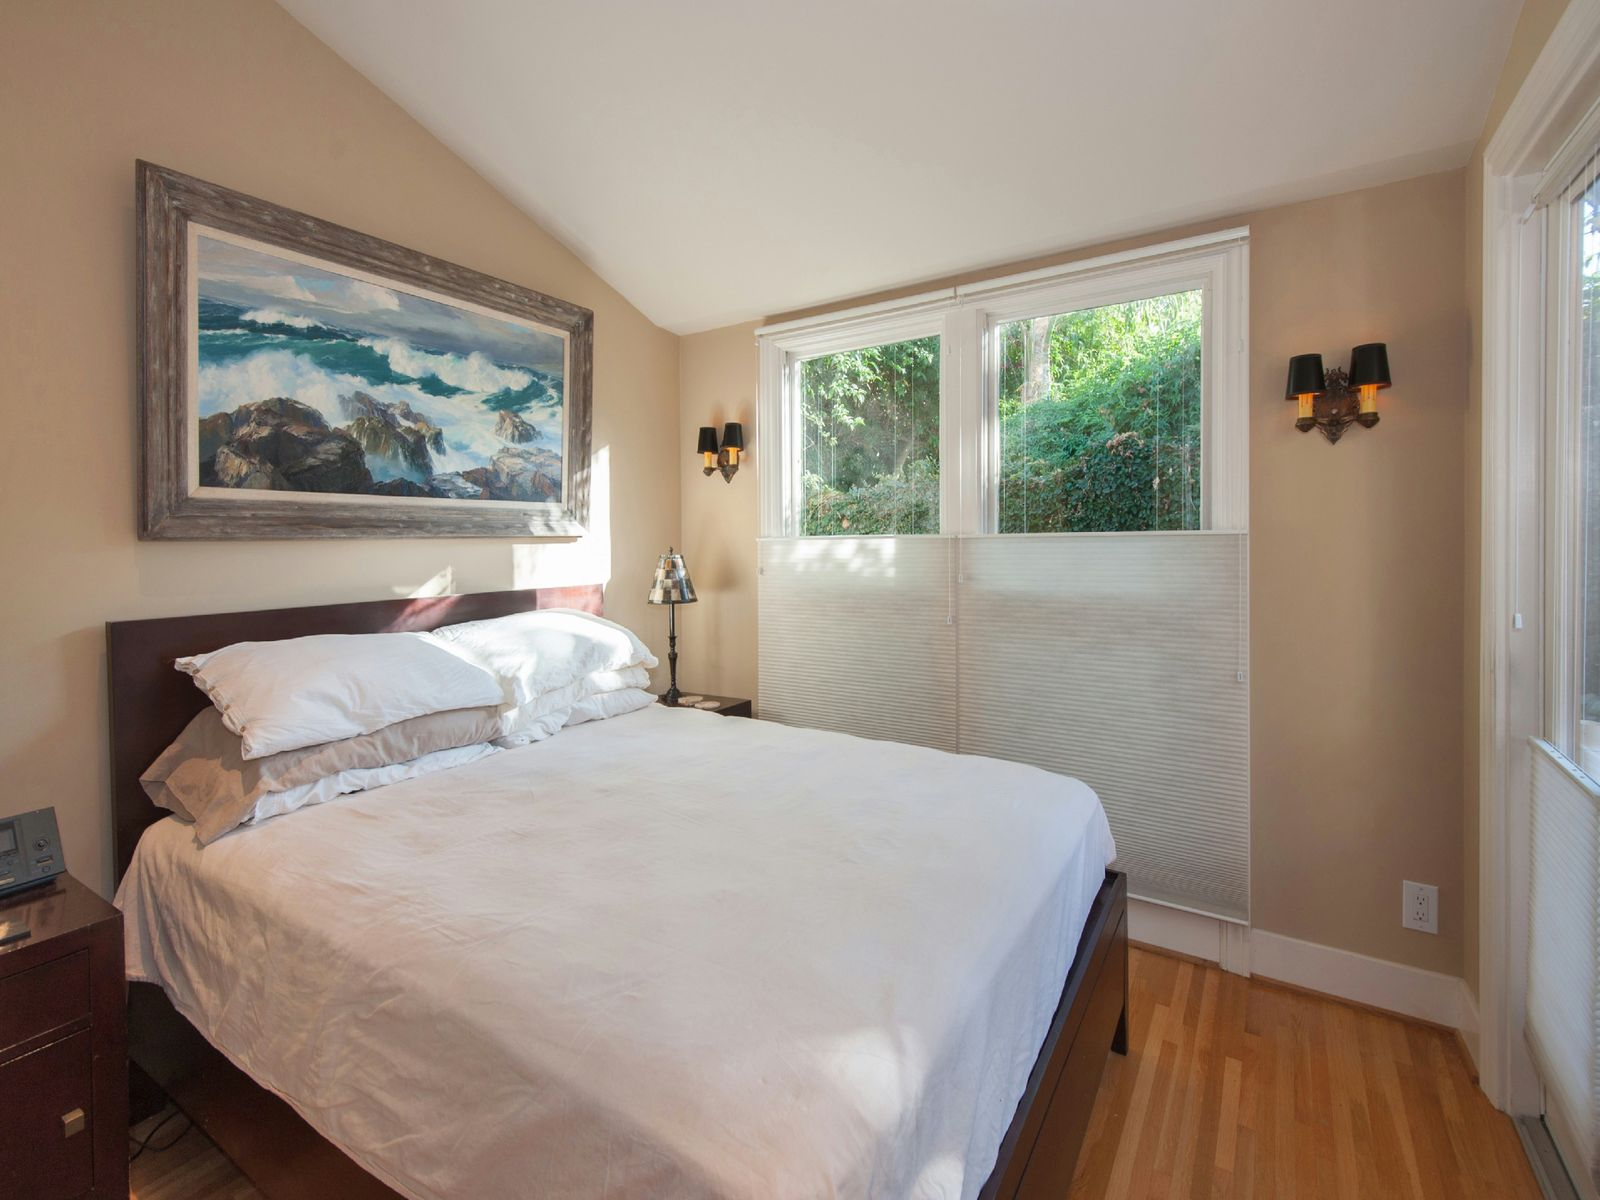 Charming West Hollywood Bungalow